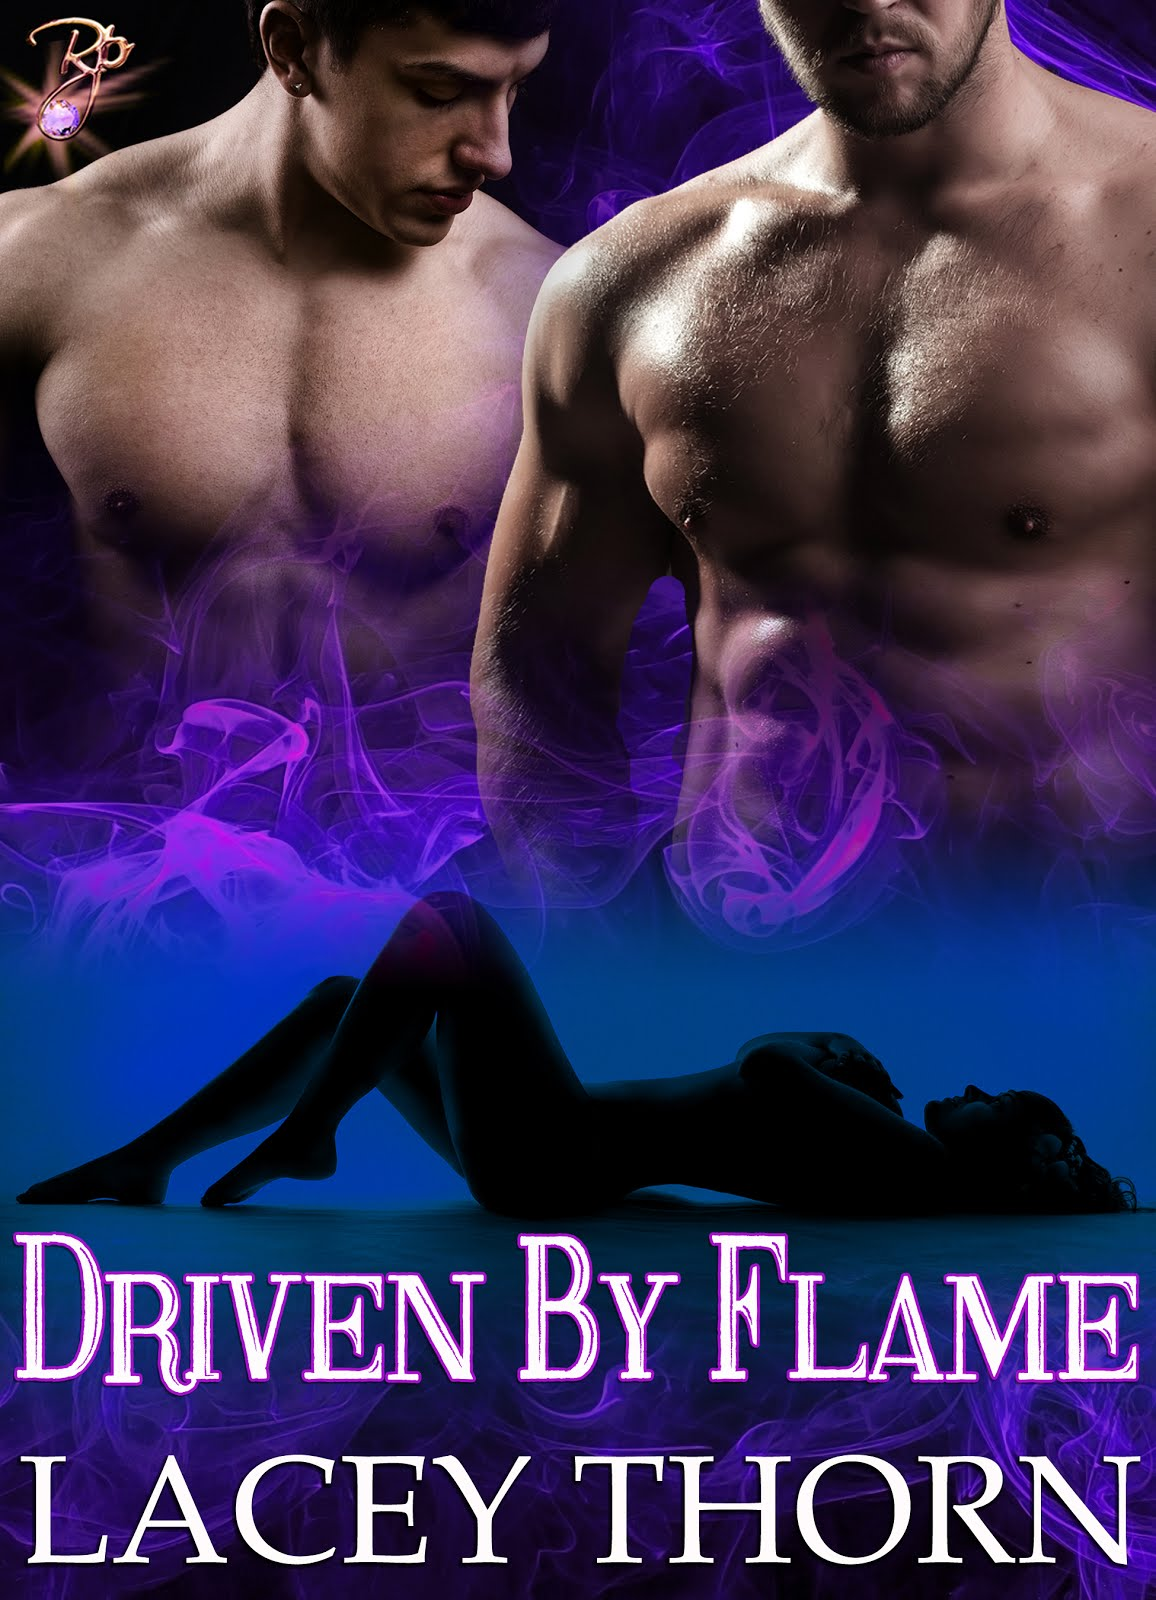 Driven by Flame